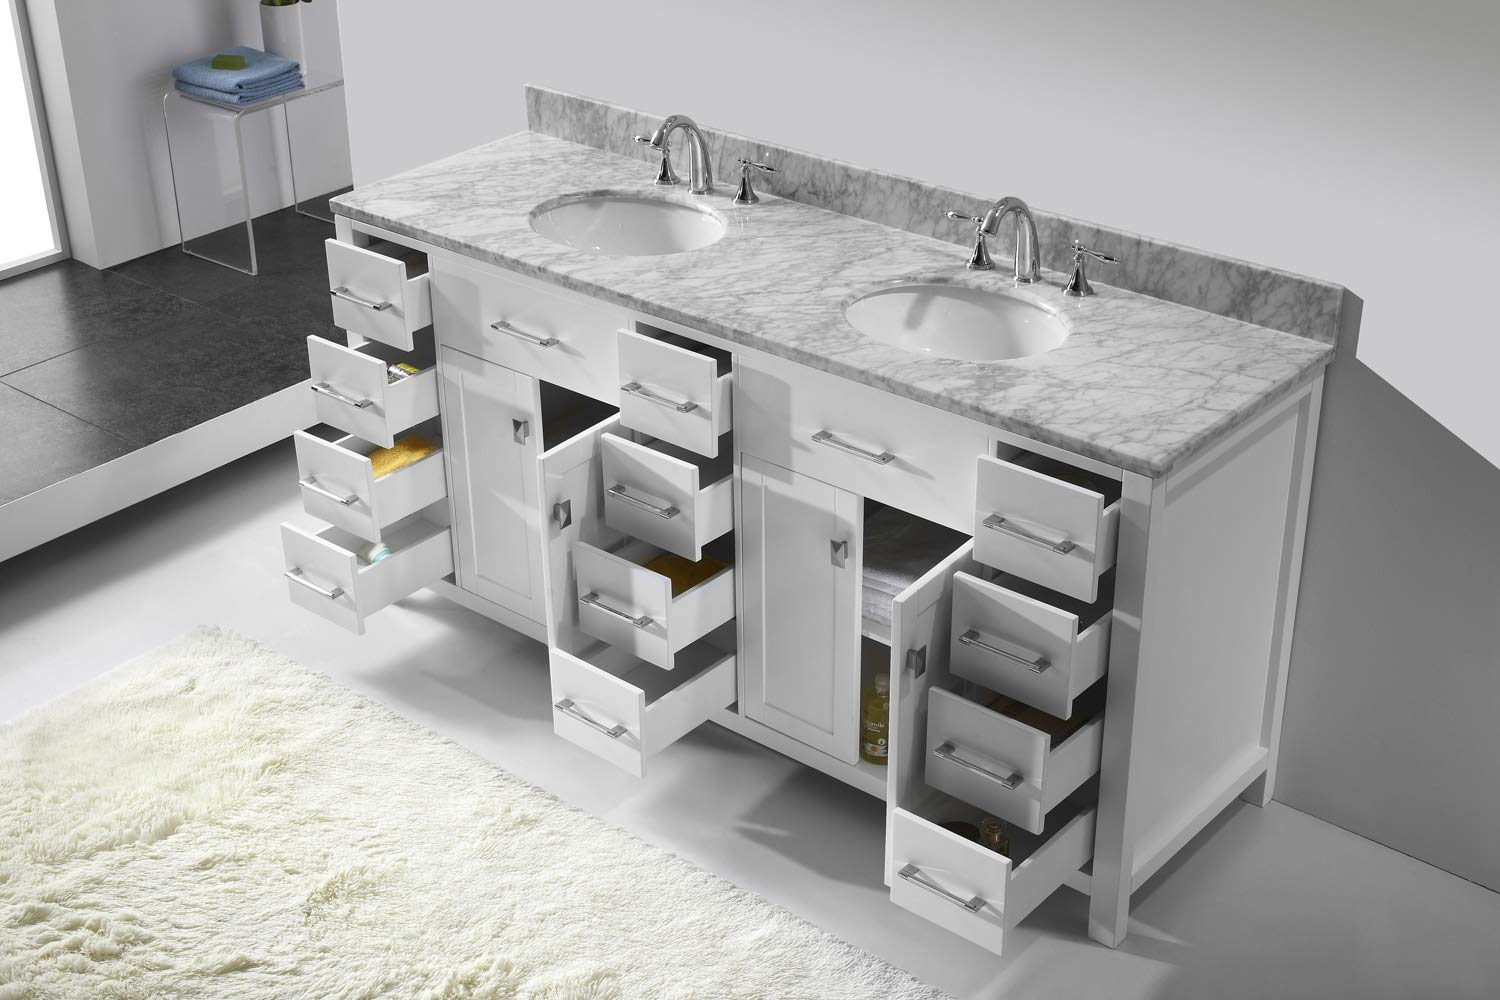 MD-2172-WMRO-WH Italian Carrara White Marble Countertop No Faucet 1 Mirror Virtu USA Caroline Parkway 72 inch Double Sink Bathroom Vanity Set in White w// Round Undermount Sink